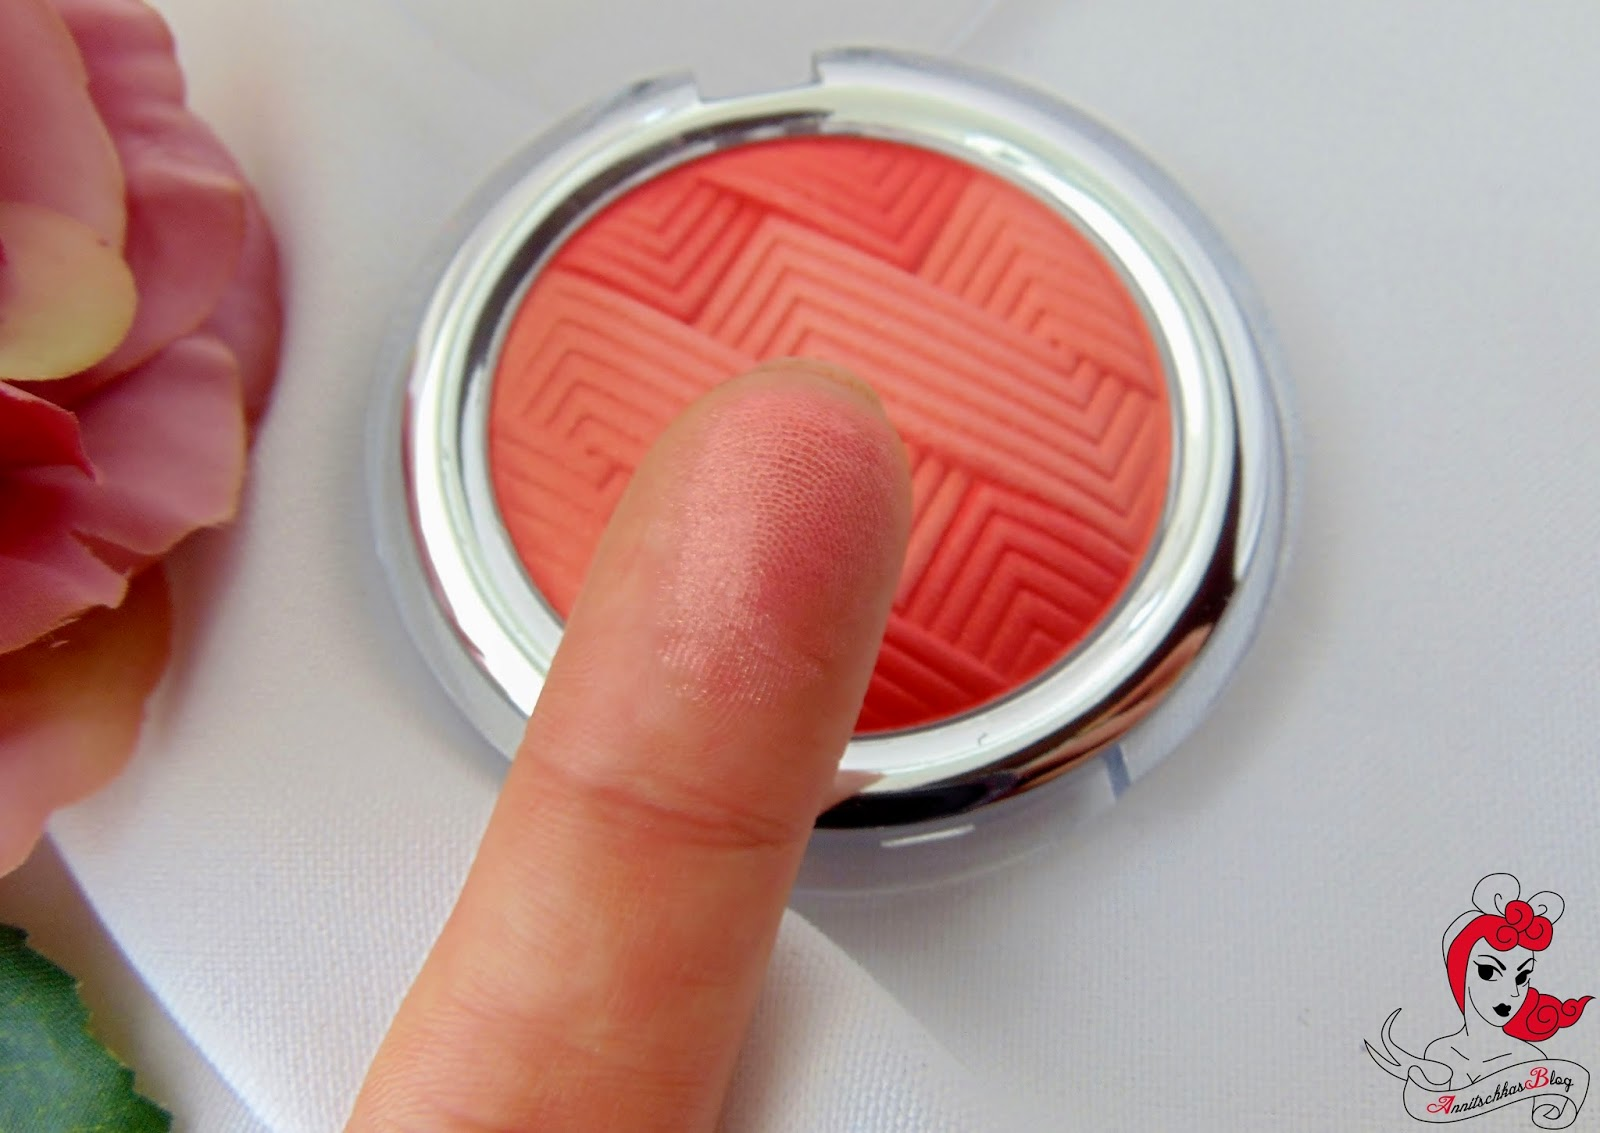 Catrice - Illuminating Blush - Coral me maybe Swatch- www.annitschkasblog.de